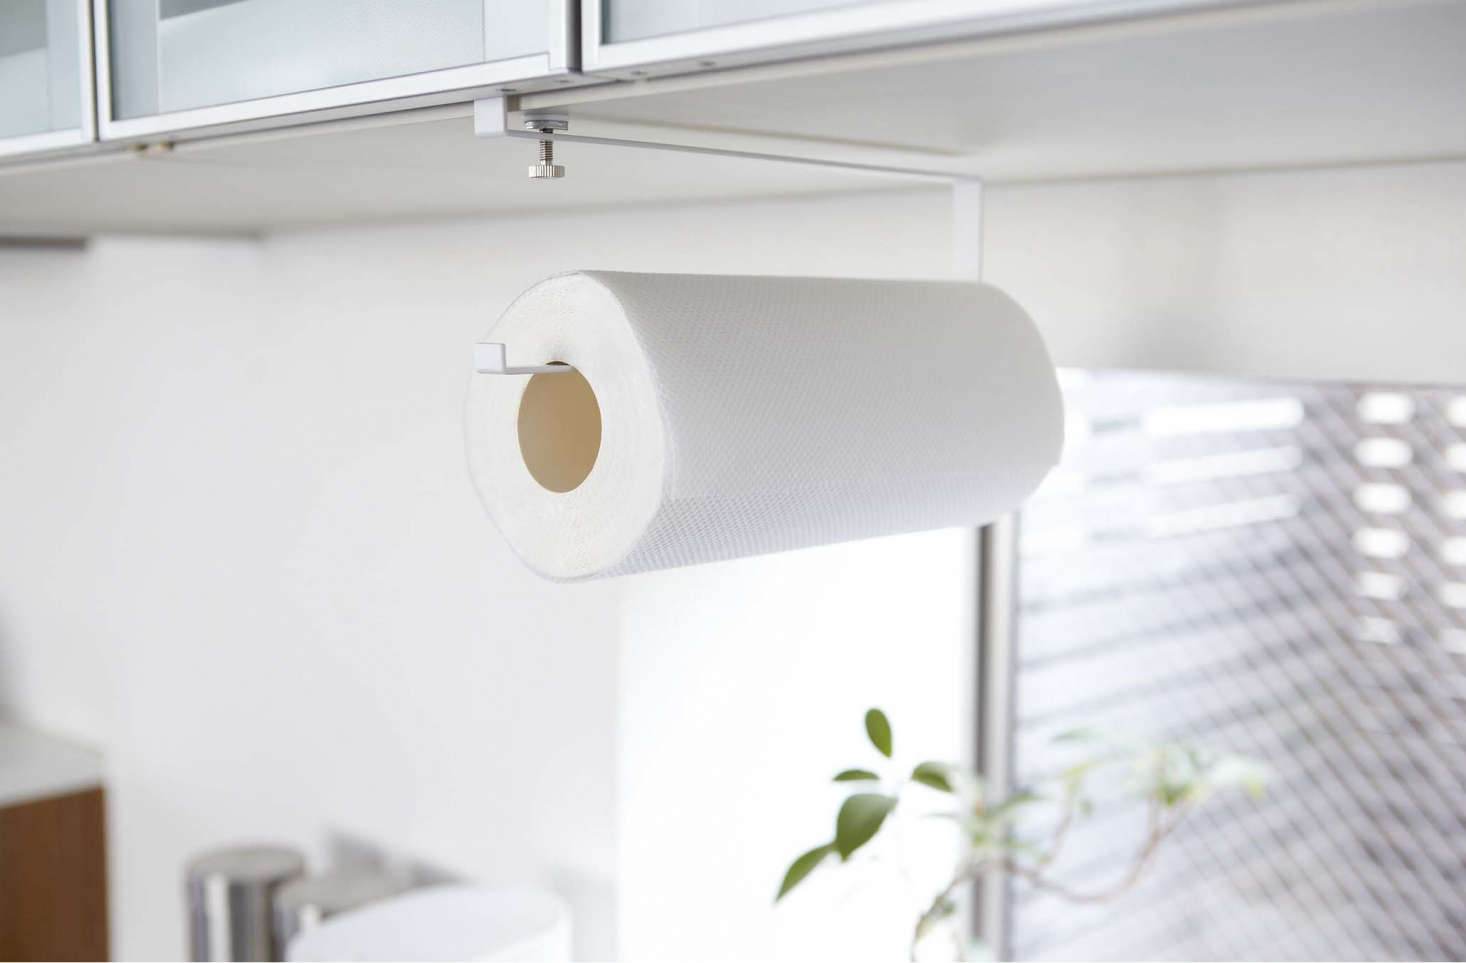 Plate Under Shelf Paper Towel Holder 2440 1